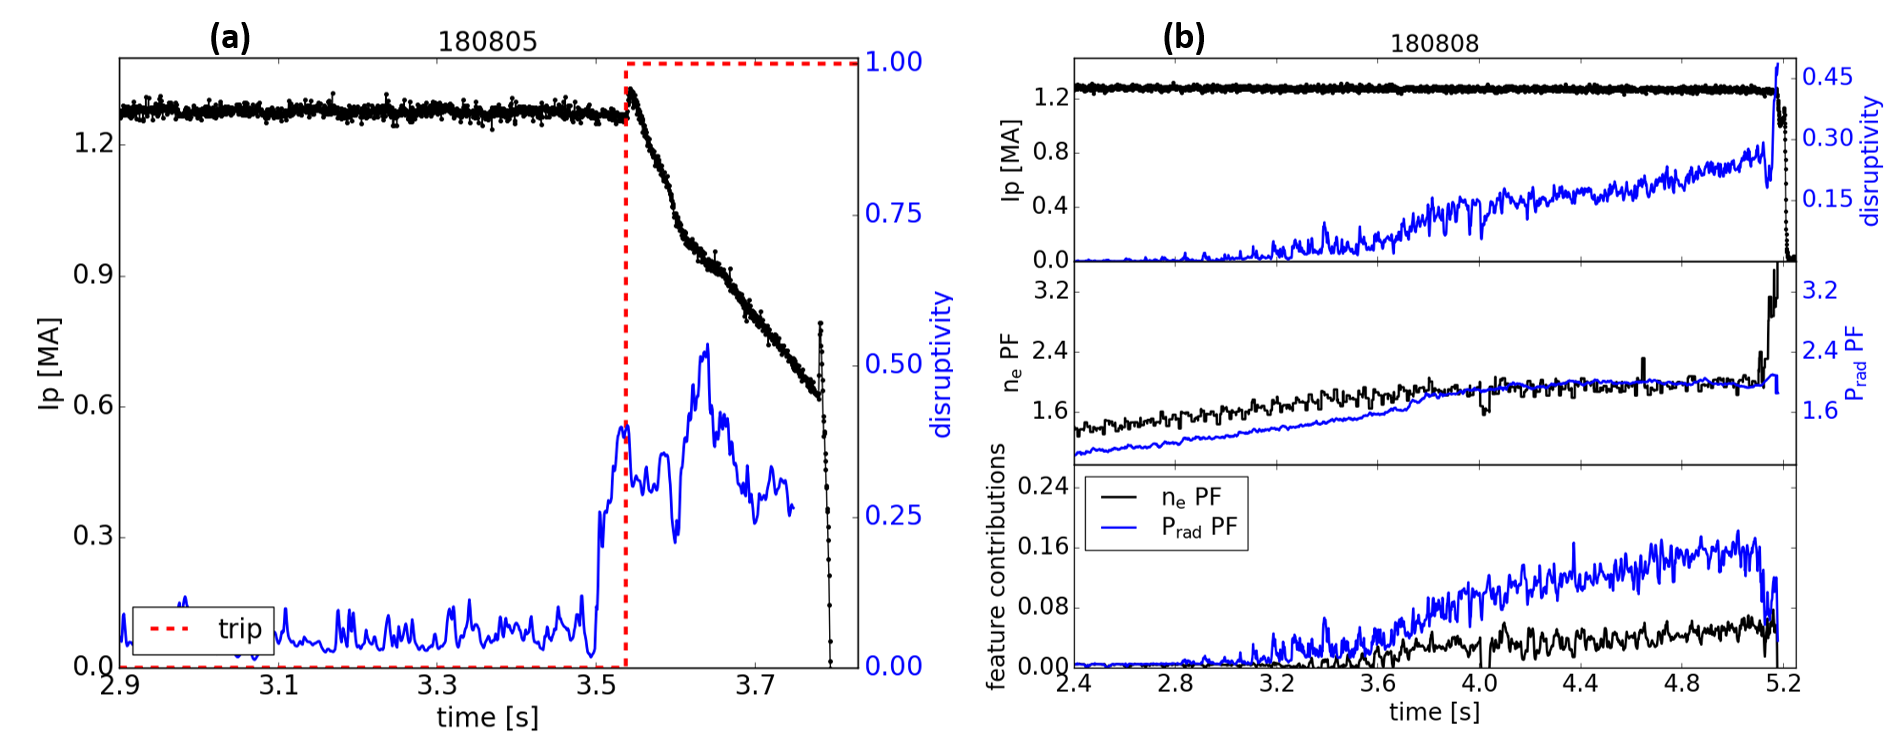 (a) In DIII-D discharge 180805, DPRF triggers an early shutdown by means of fast ramp-down in response to the presence of a tearing mode. Plasma disrupts anyway but at halved plasma current value, thus strongly reducing the stored energy that gets dissipated. The red dashed line indicates the trigger time (t ~ 3.6 s) at the preset disruptivity threshold used by the PCS. (b) ITER Baseline discharge 180808 in DIII-D, at 2s gas valve opens to inject Argon. The disruptivity responds on impurity accumulation time scales, as reflected in the middle panel by radiation (P$_{\text{rad}}$PF) and density (n$_\text{e}$PF) peaking factors. The bottom panel shows the feature contributions calculated in real-time: P$_{\text{rad}}$PF is the most important driver of the disruptivity increase, while less relevant features are not shown here.